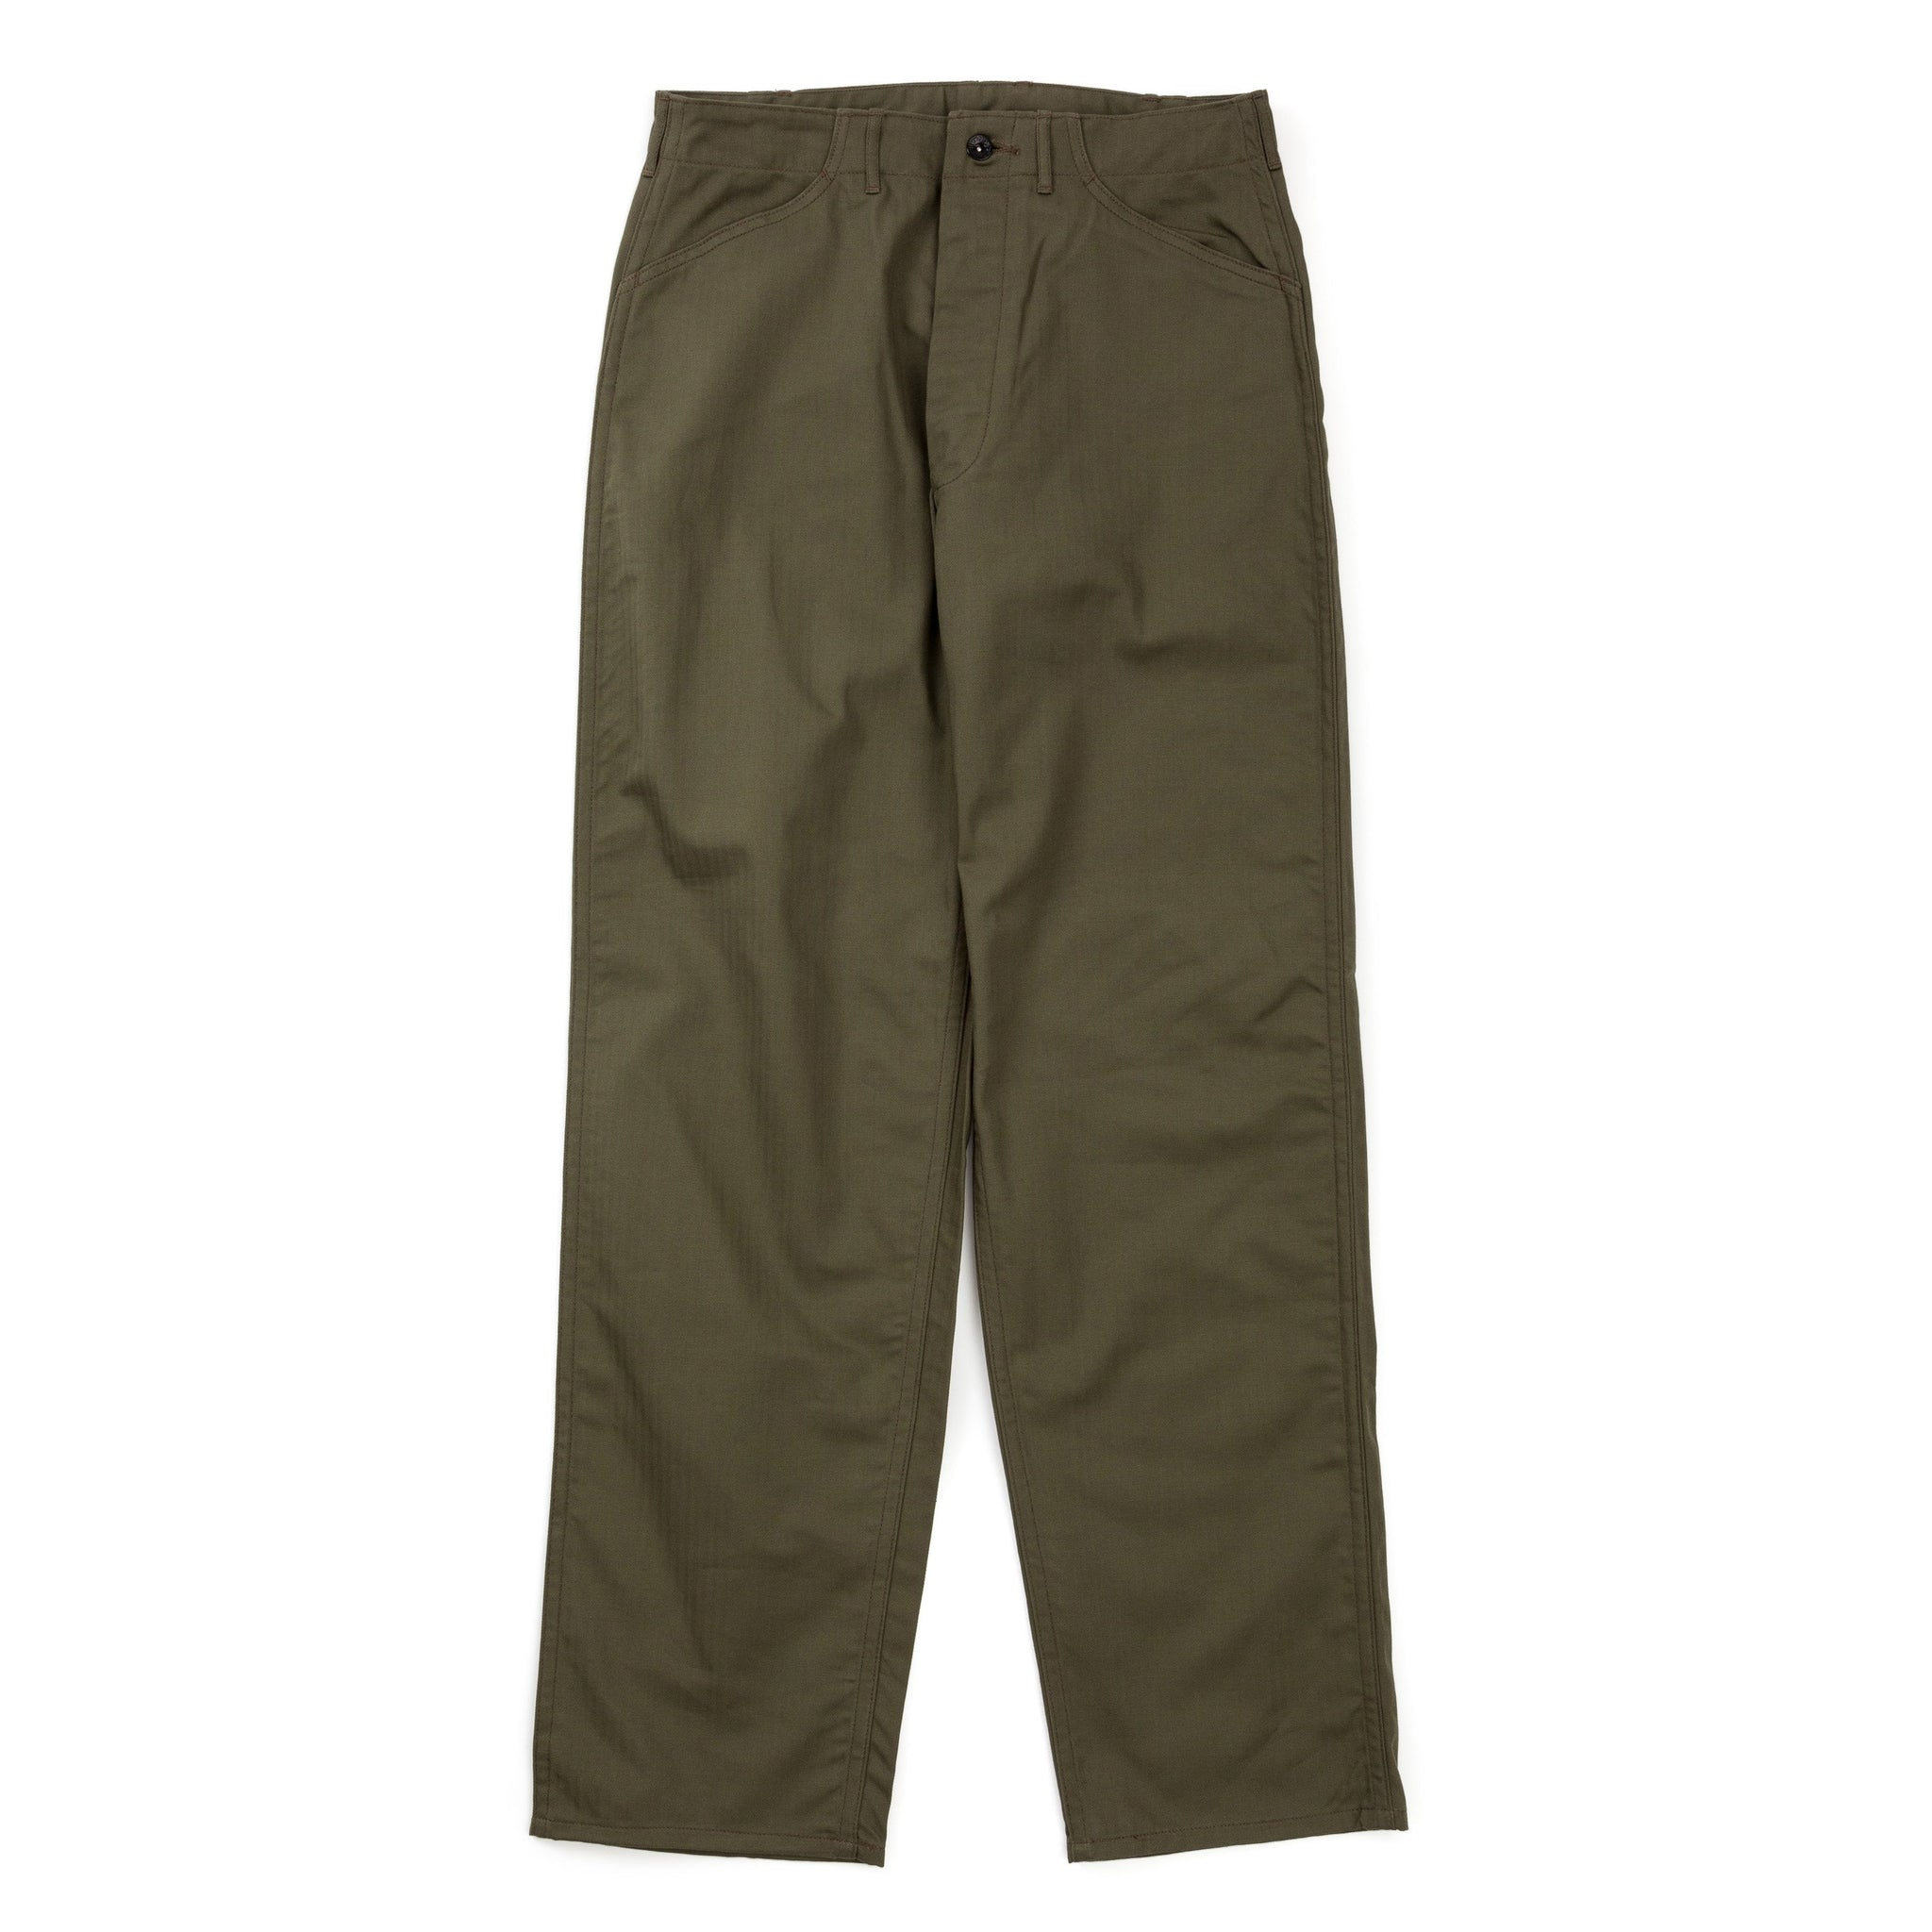 N-3 Utility Trousers HBT